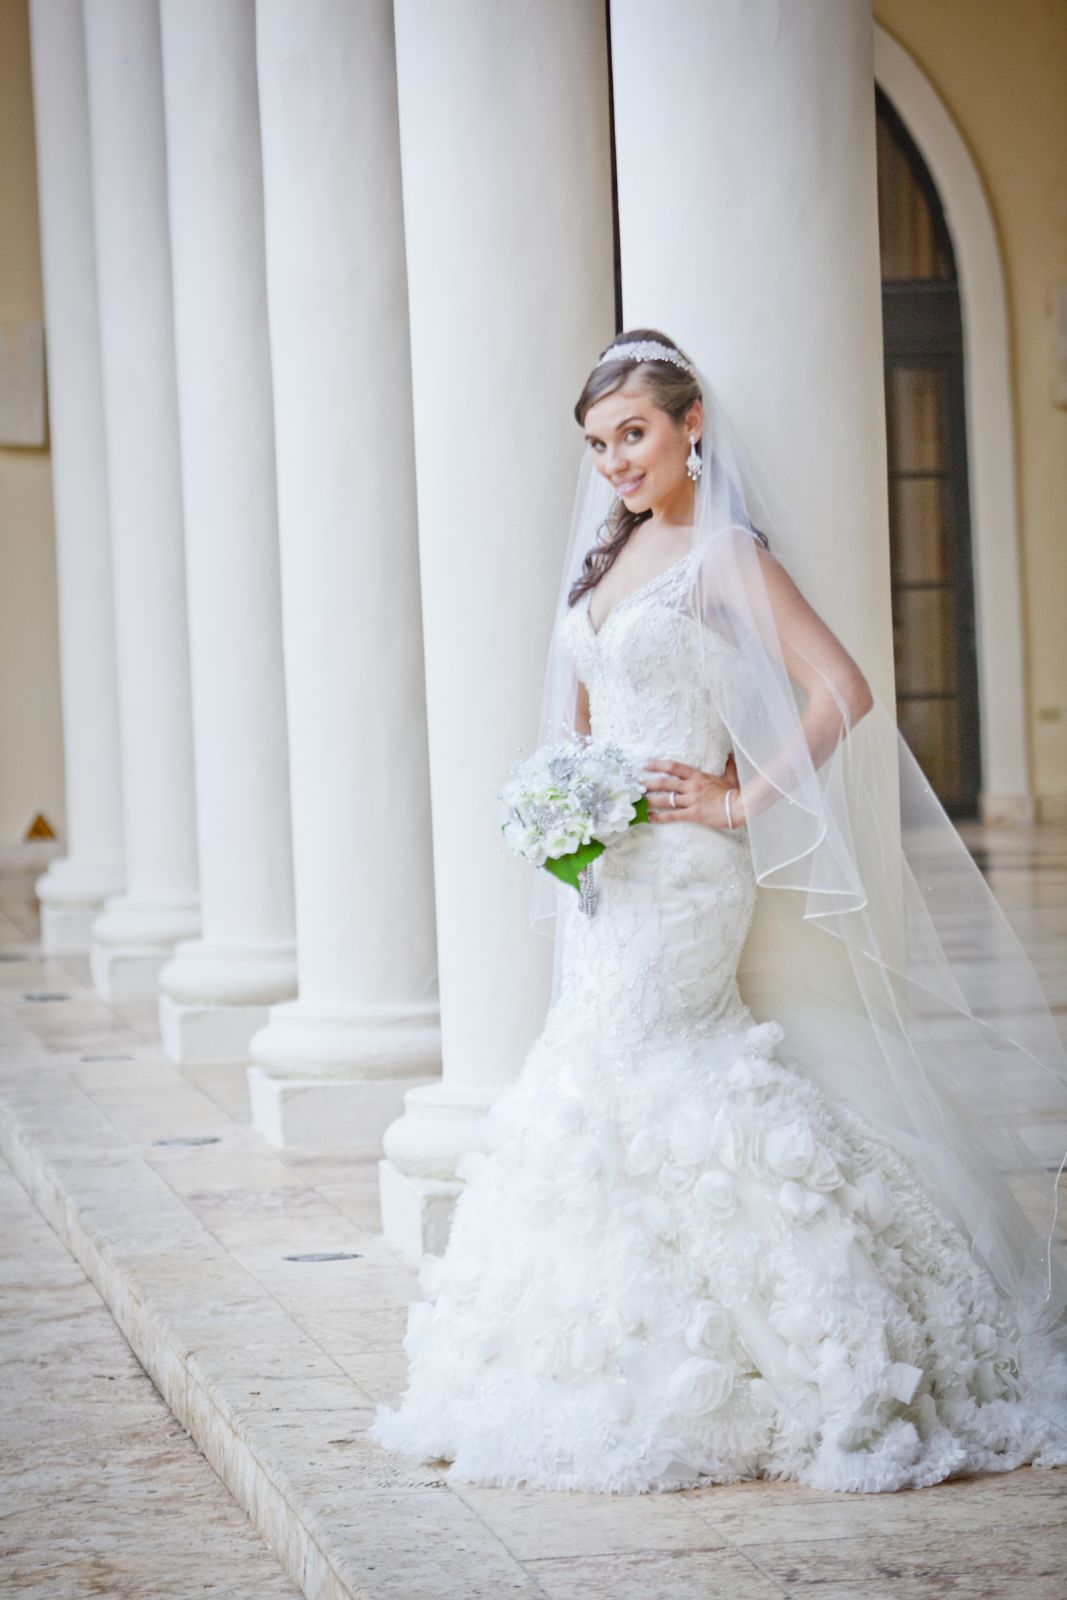 My requisite bride shot- this is the one I will send to my bridal shop where I got my dress.